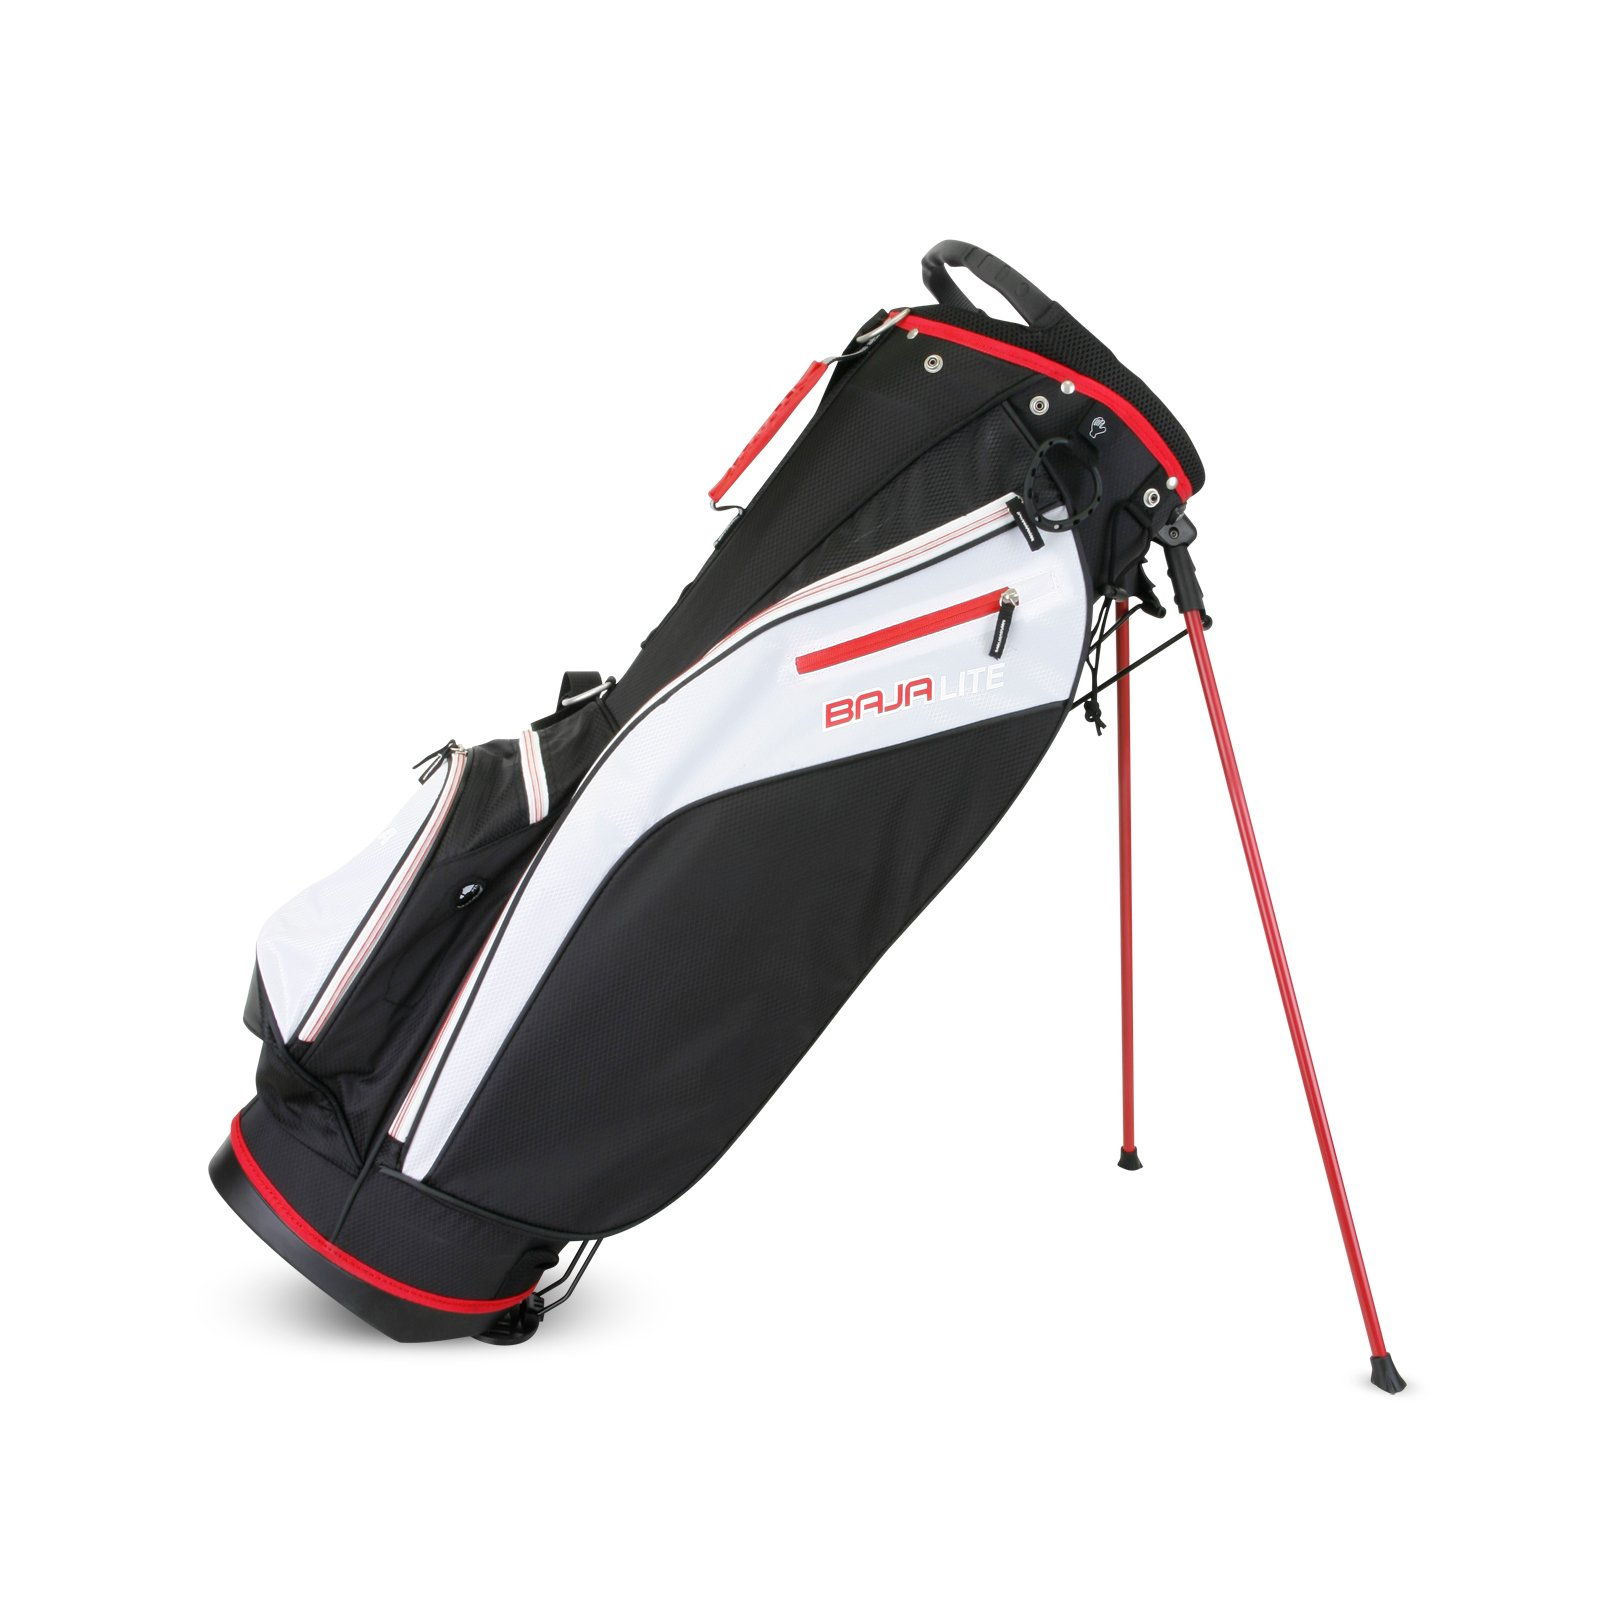 Sahara Baja Lite Golf Stand Bag, Black/White/Red